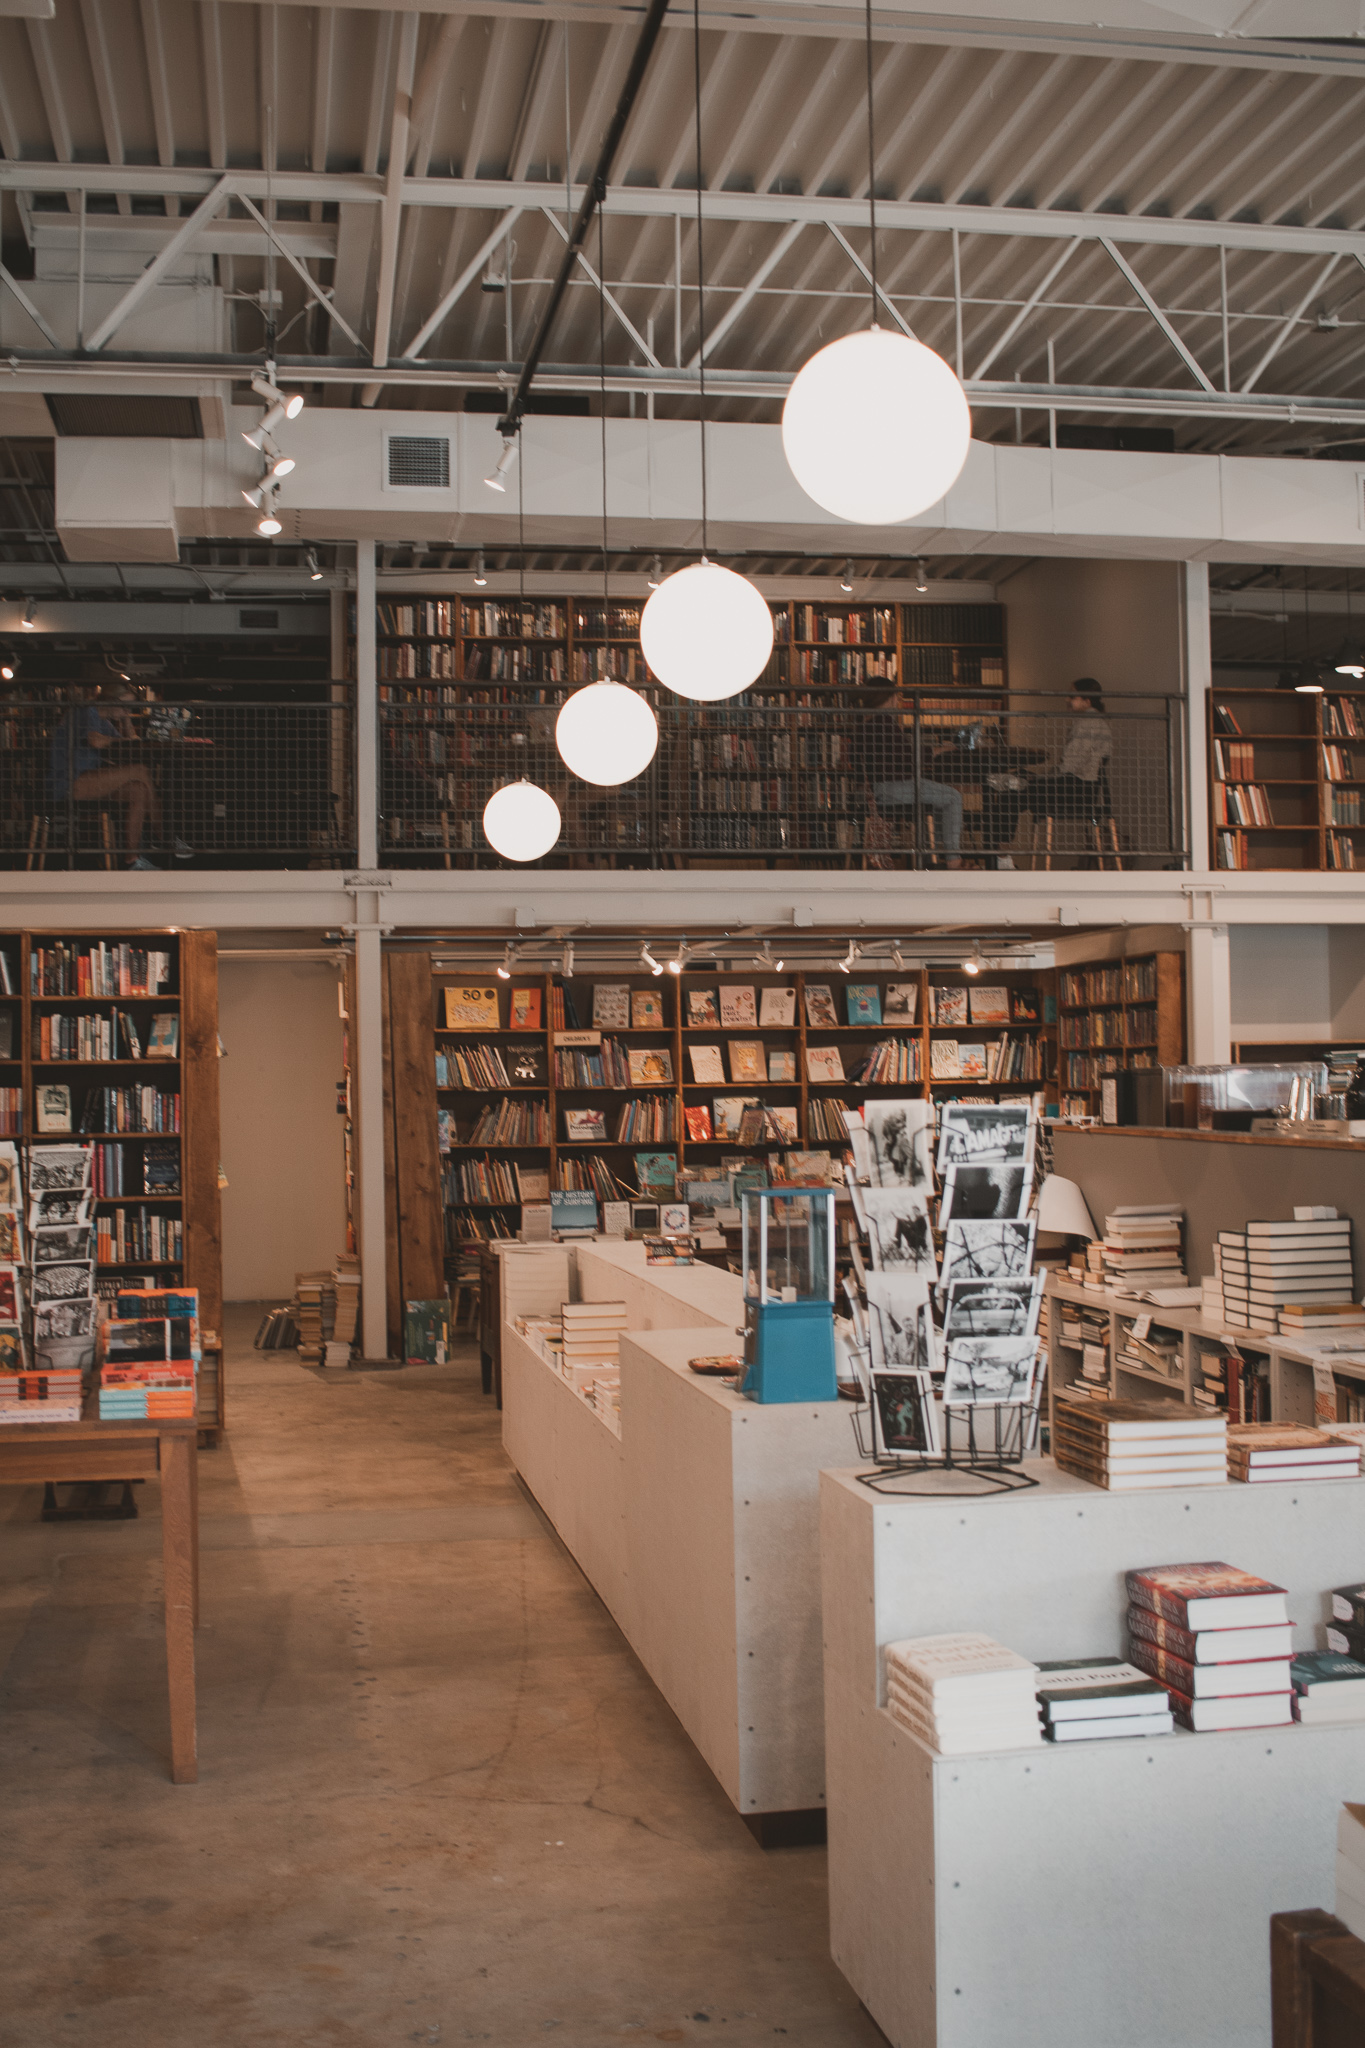 The Dusty Bookshelf Returns To Aggieville With New Services